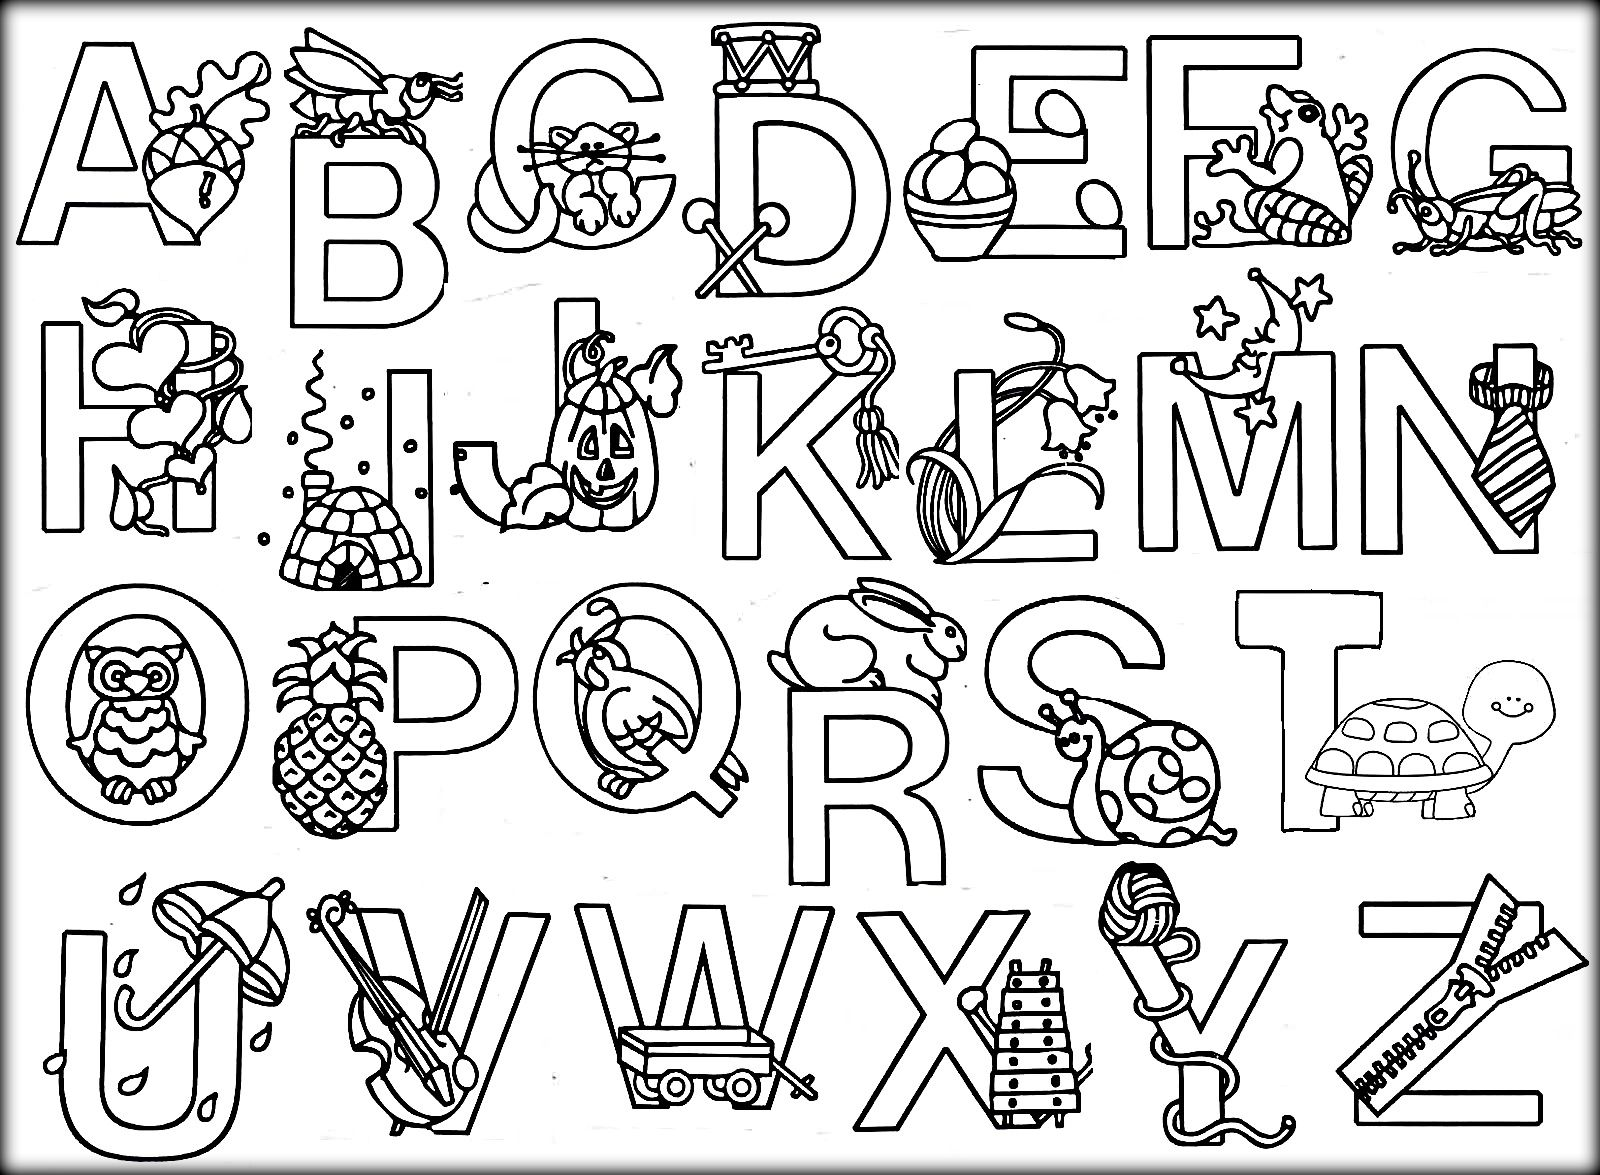 Grab Your New Coloring Pages Alphabet Download Http Gethighit Com New Coloring Pages Alphabet Dow Alphabet Coloring Pages Alphabet Poster Alphabet Coloring